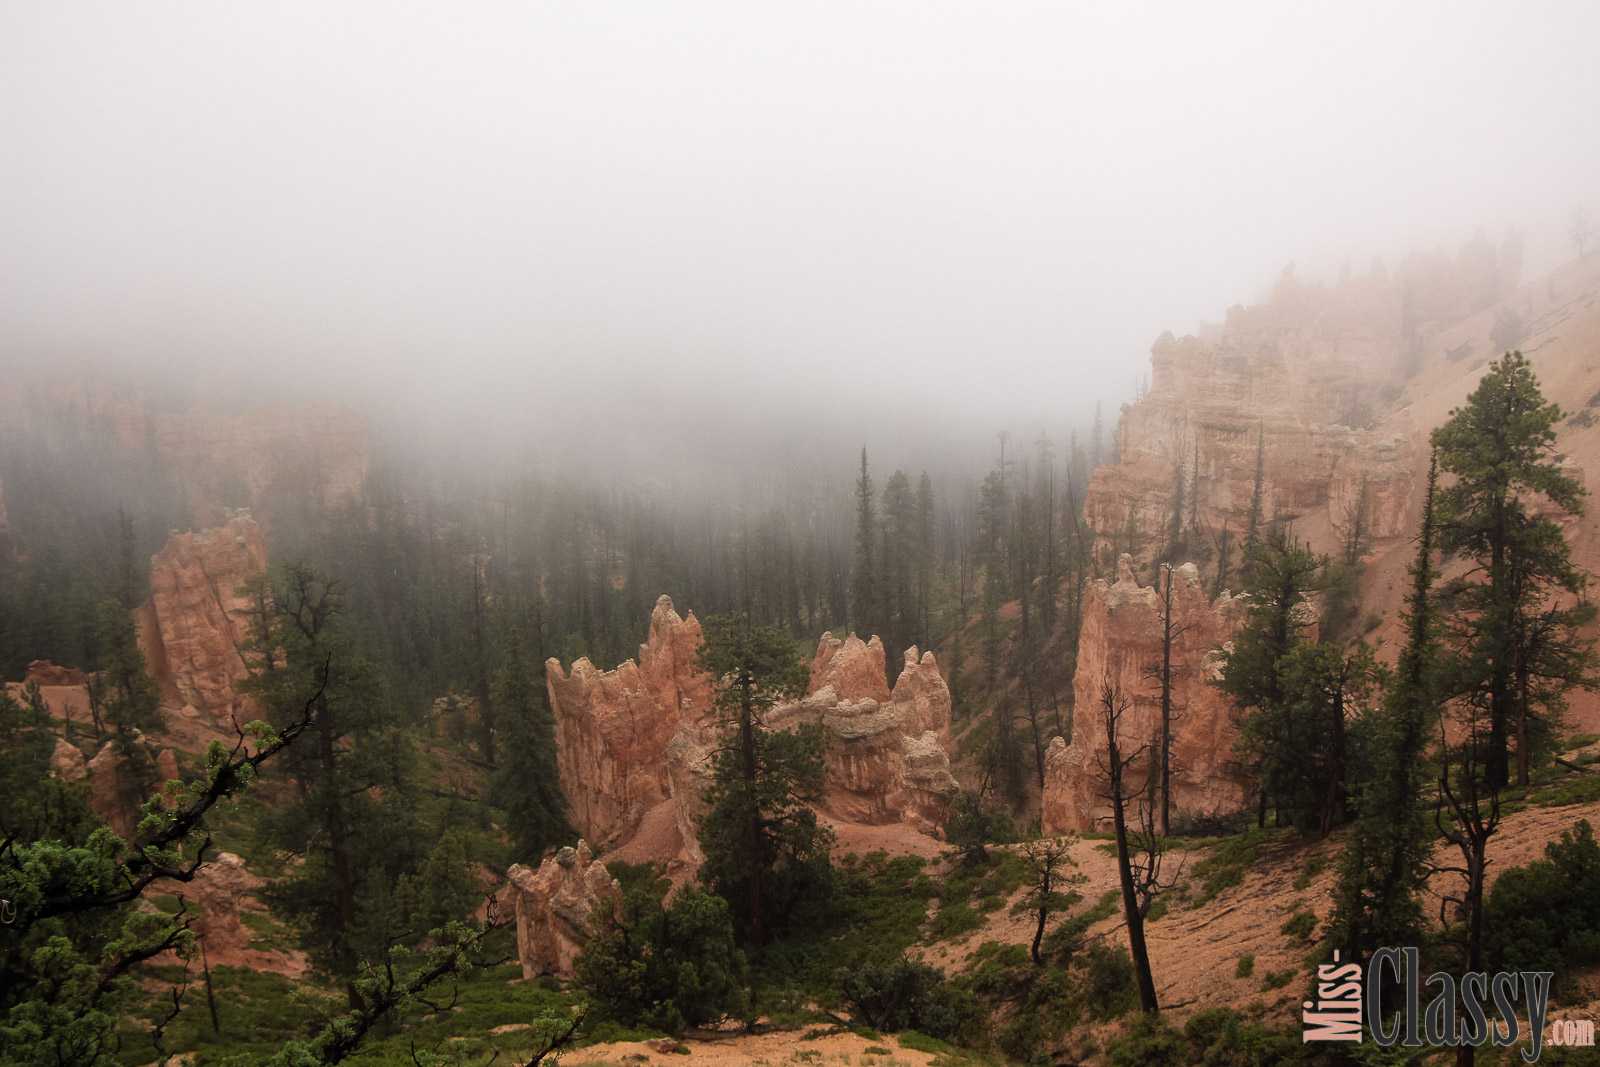 TRAVEL Bryce Canyon und Zion Nationalpark, Miss Classy, miss-classy.com, Lifestyleblog, Lifestyleblogger, Lifestyleblog Graz, Travelblog, Travelblogger, Graz, Steiermark, Österreich, classy, beclassy, Reise, Travel, Wanderlust, Wayfarer, USA, Westküste, Roadtrip, Utah, US Nationalparks, Bryce Canyon, Bryce, Best Western, Best Western Plus Ruby's Inn, Ruby's Inn, Zion Nationalpark, Zion Lodge, Emerald Pools, Las Vegas, Dixie National Forest, Red Canyon